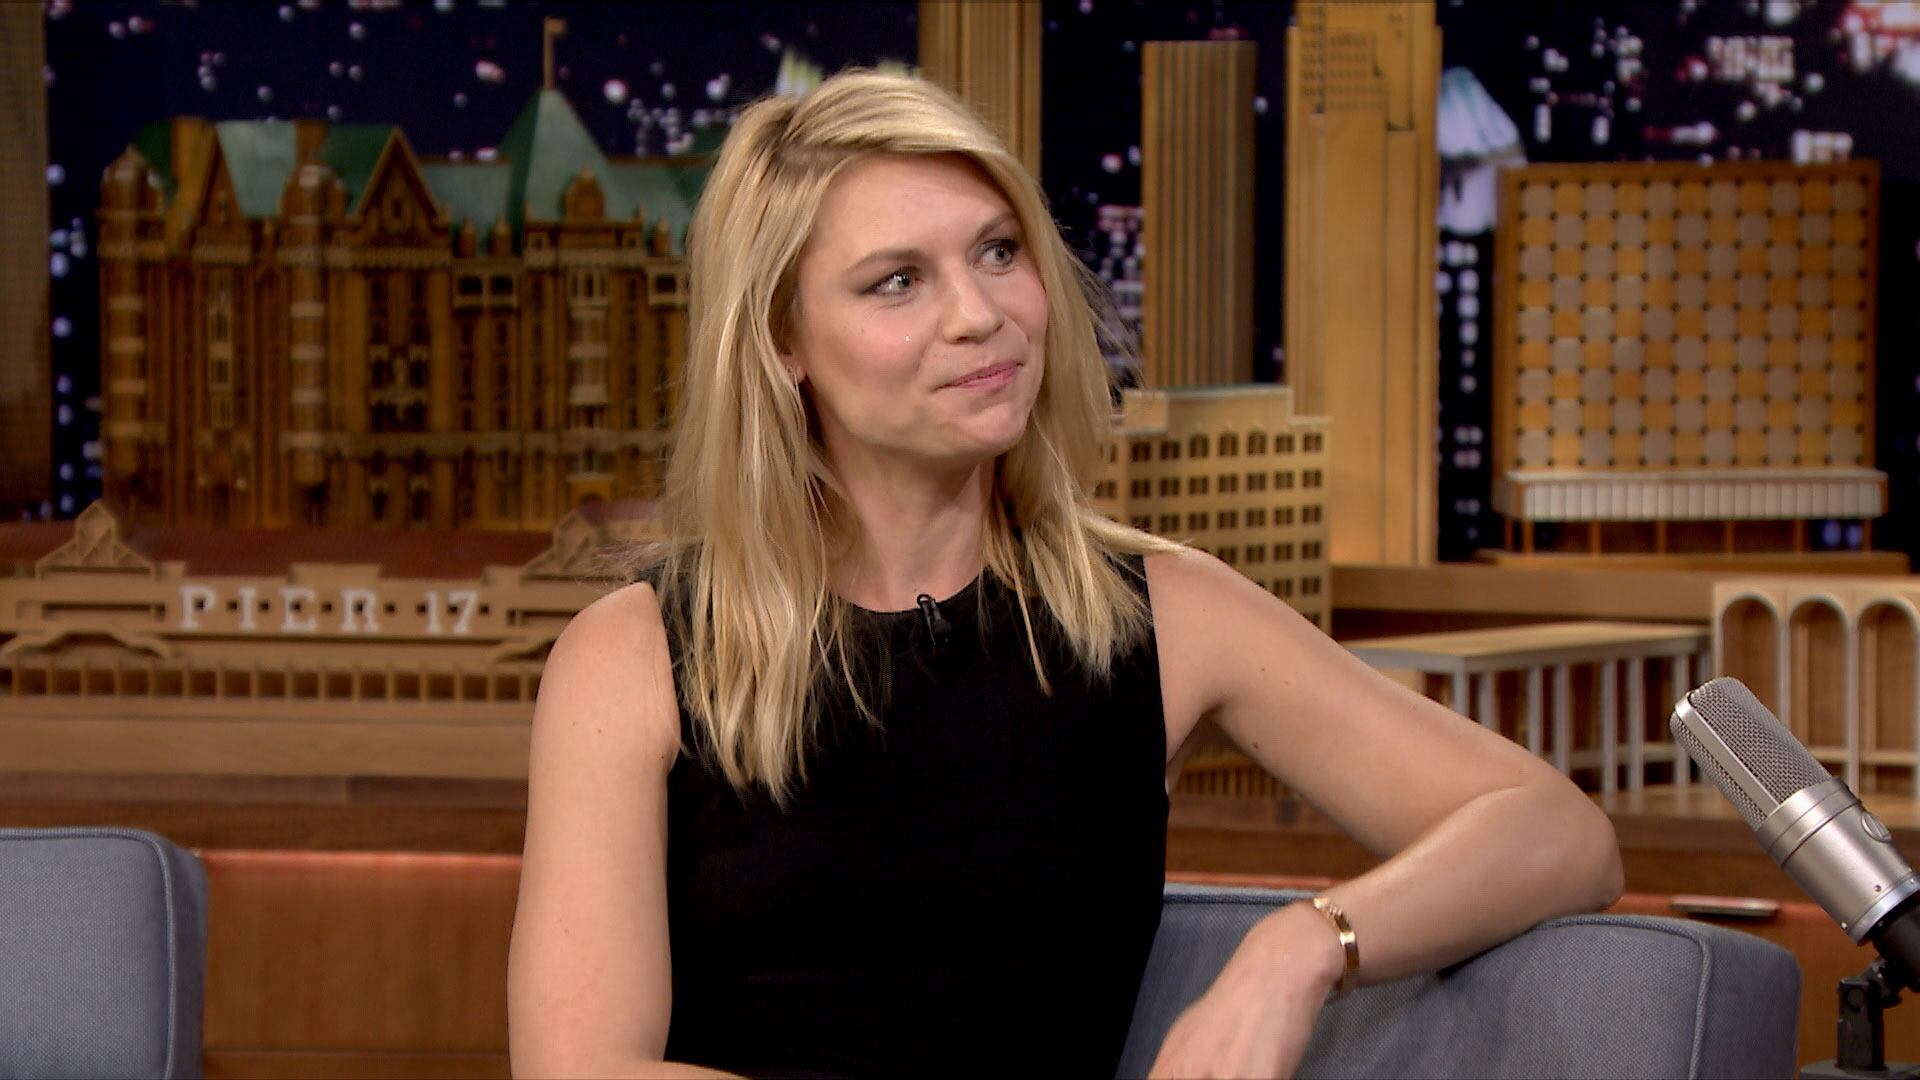 Claire Danes' Son Speaks a Little German